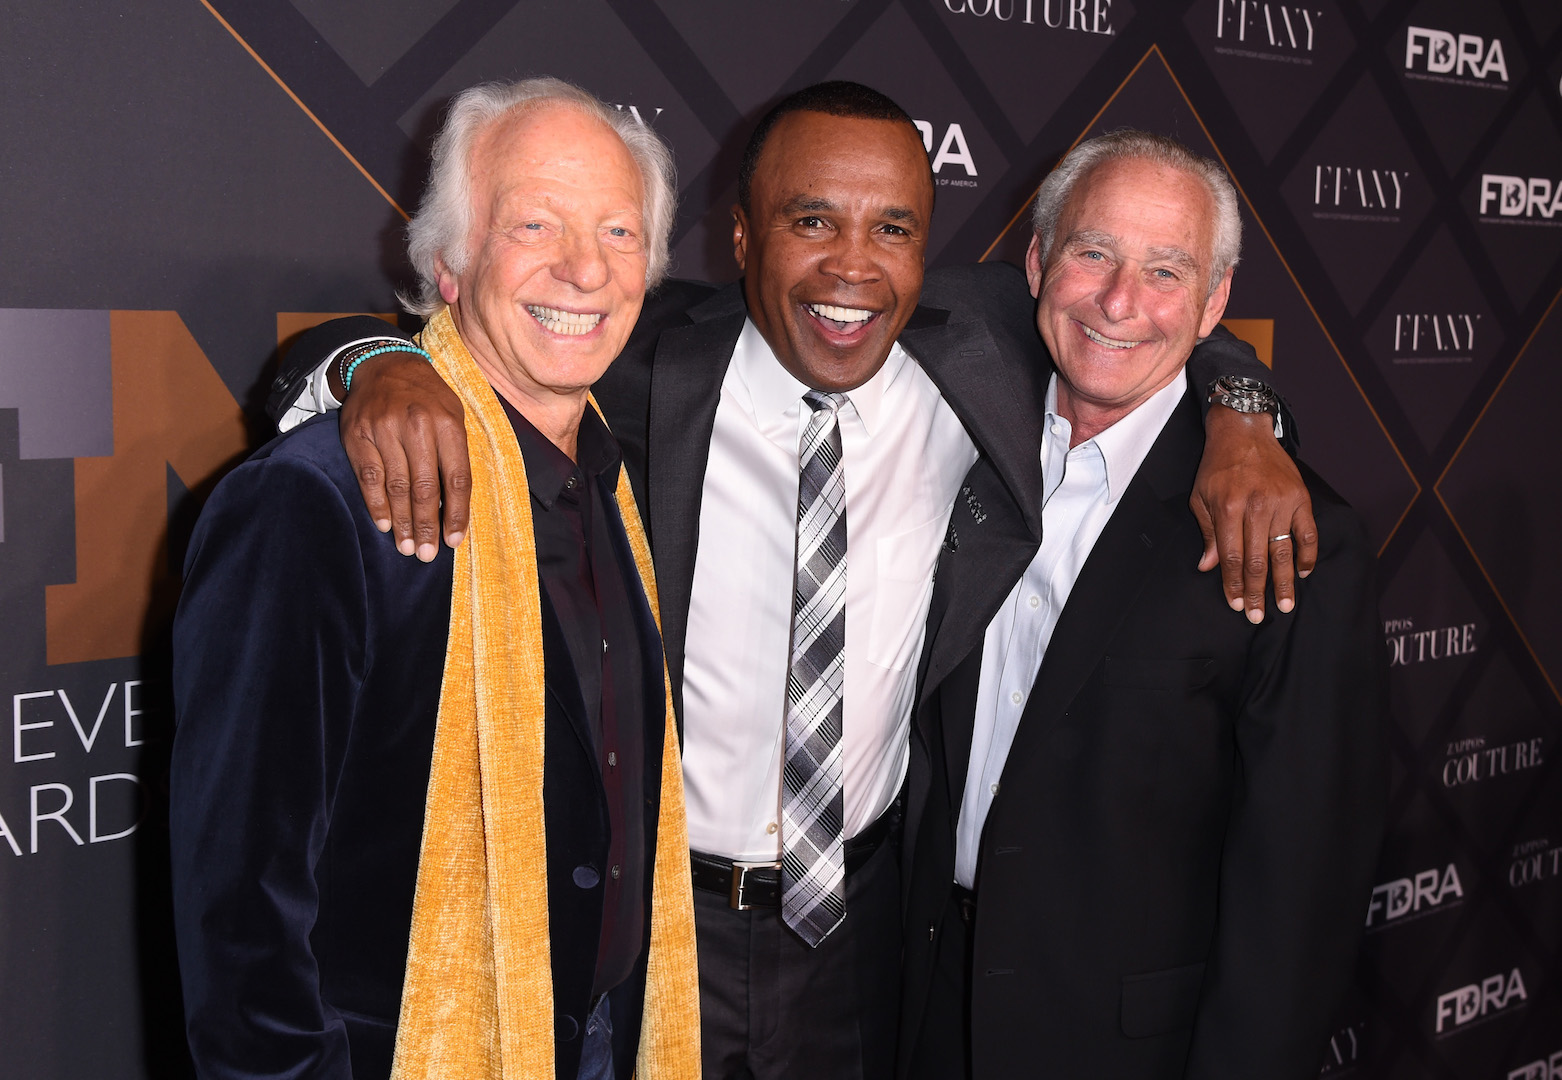 Mandatory Credit: Photo by Stephen Lovekin/Variety/REX Shutterstock (5470209ae) Robert Greenberg, Sugar Ray Leonard, and David Weinberg Footwear News Achievement Awards, Arrivals, New York, America - 02 Dec 2015